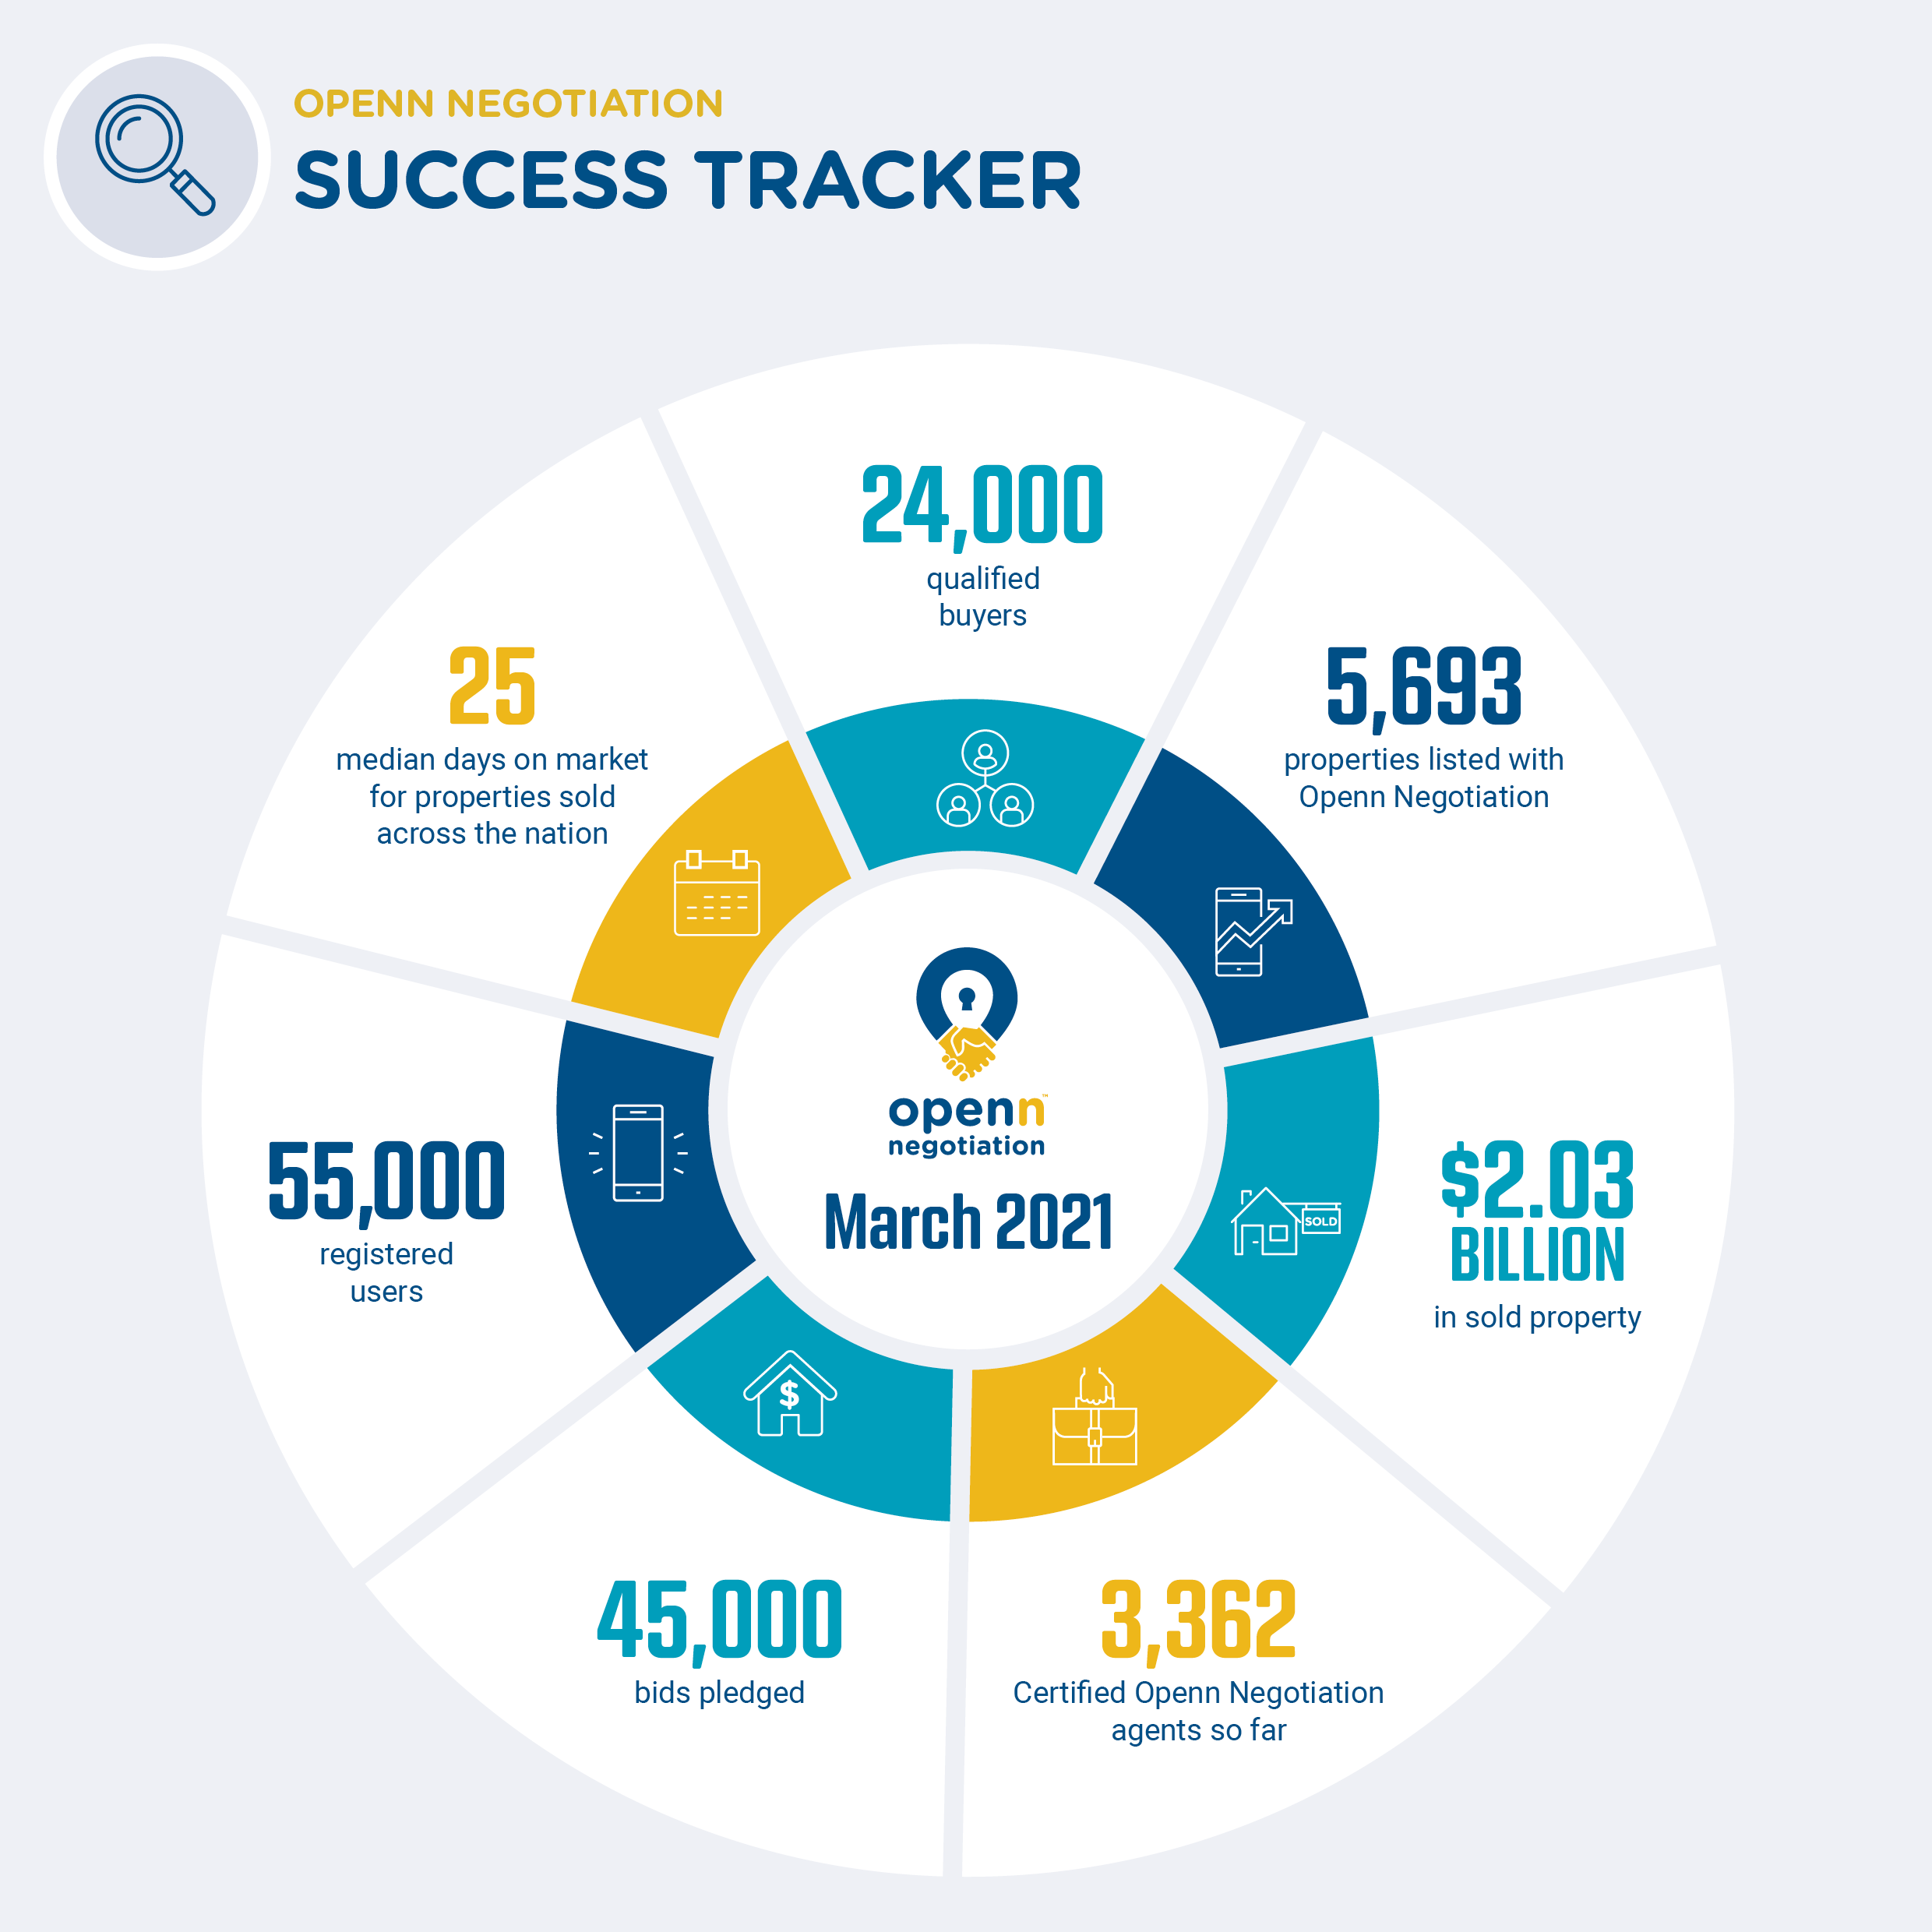 2103 - Success Tracker - March 2021